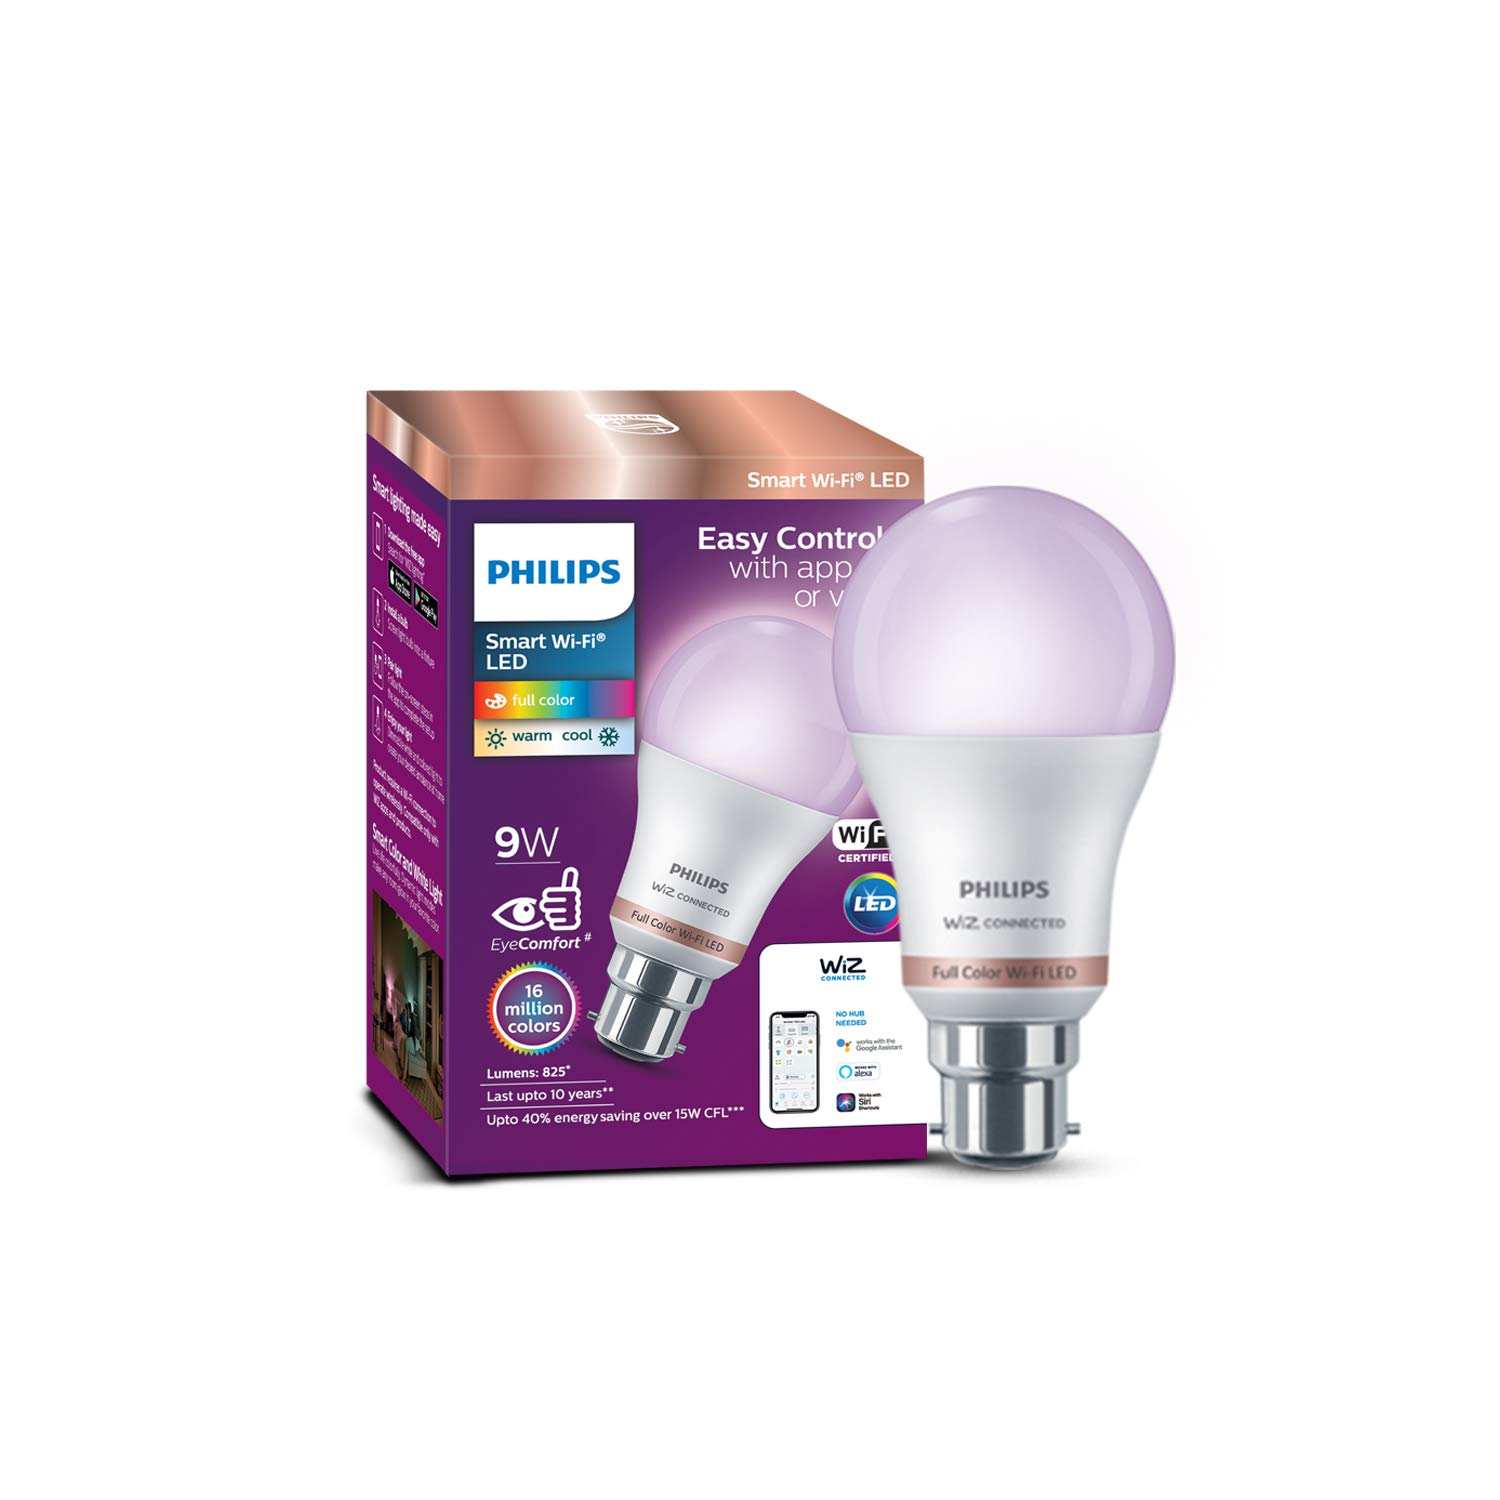 Philips Smart Wi-Fi LED bulb